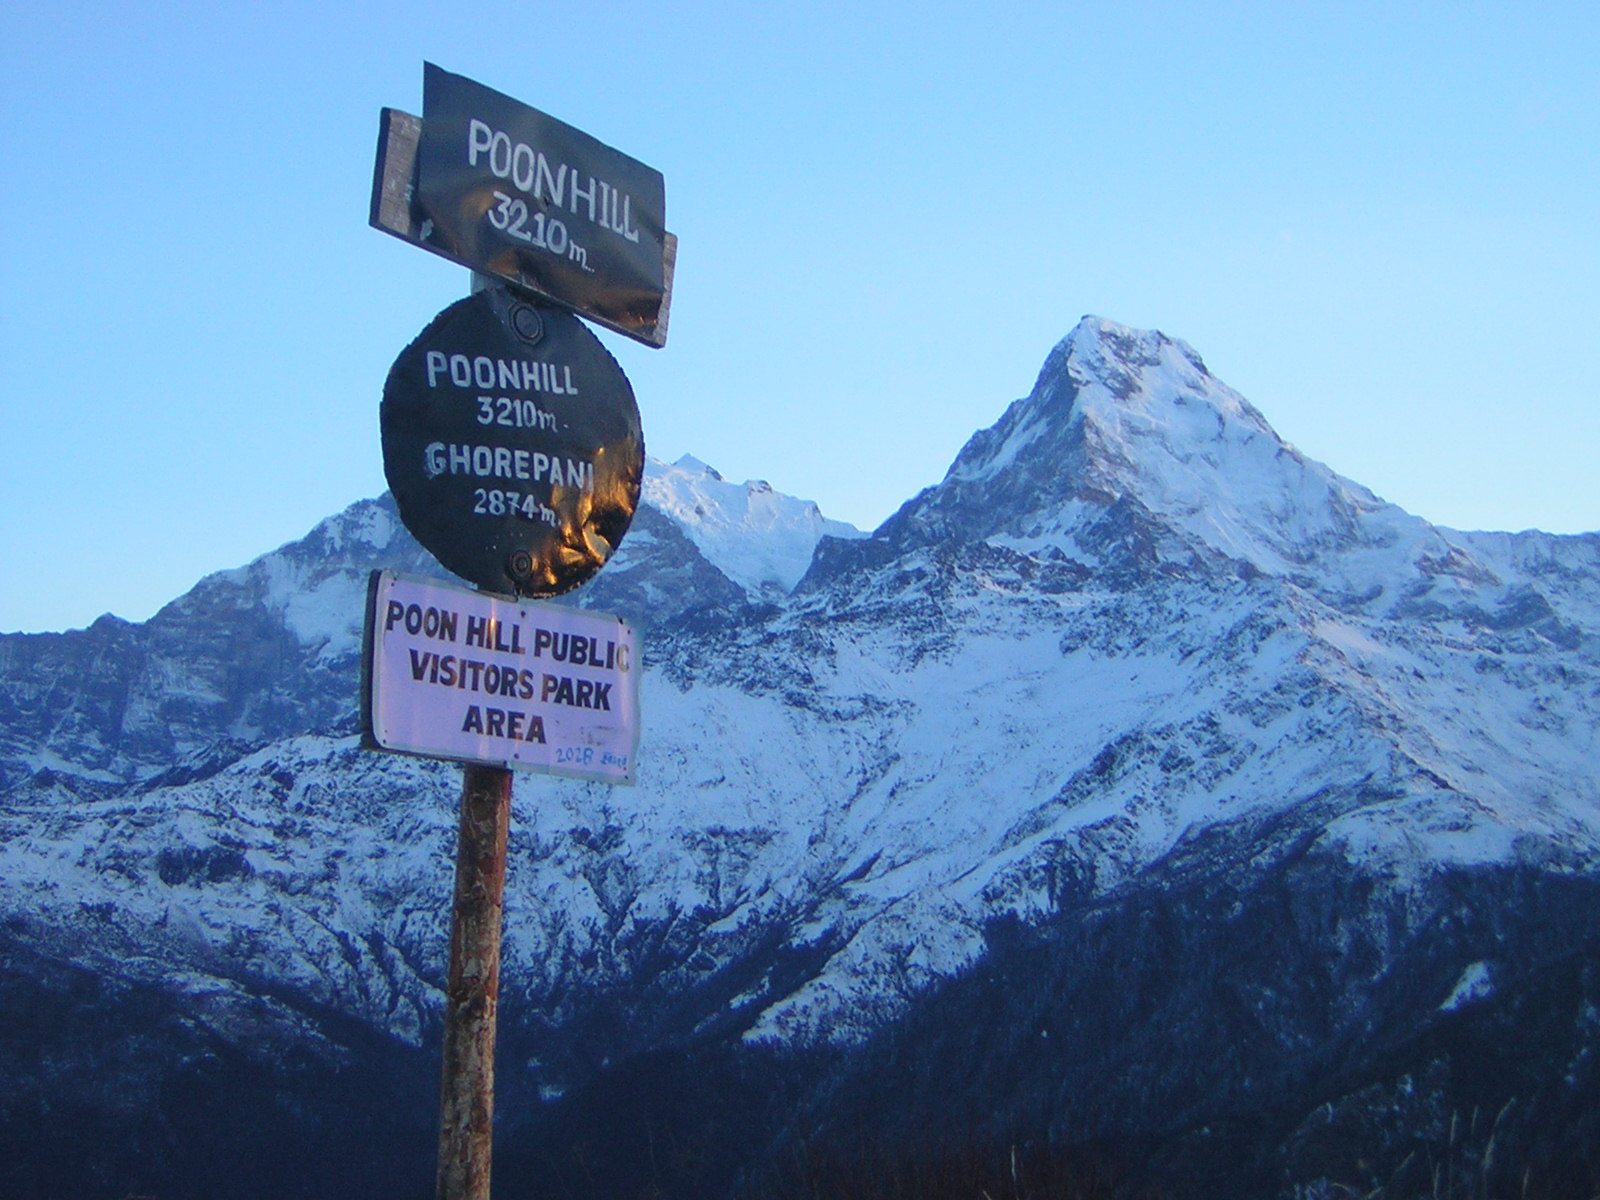 poon hill - Places around Annapurna Base Camp, annapurna base camp places to stay, accomodations around ABC trek, trekking to annapurna base camp